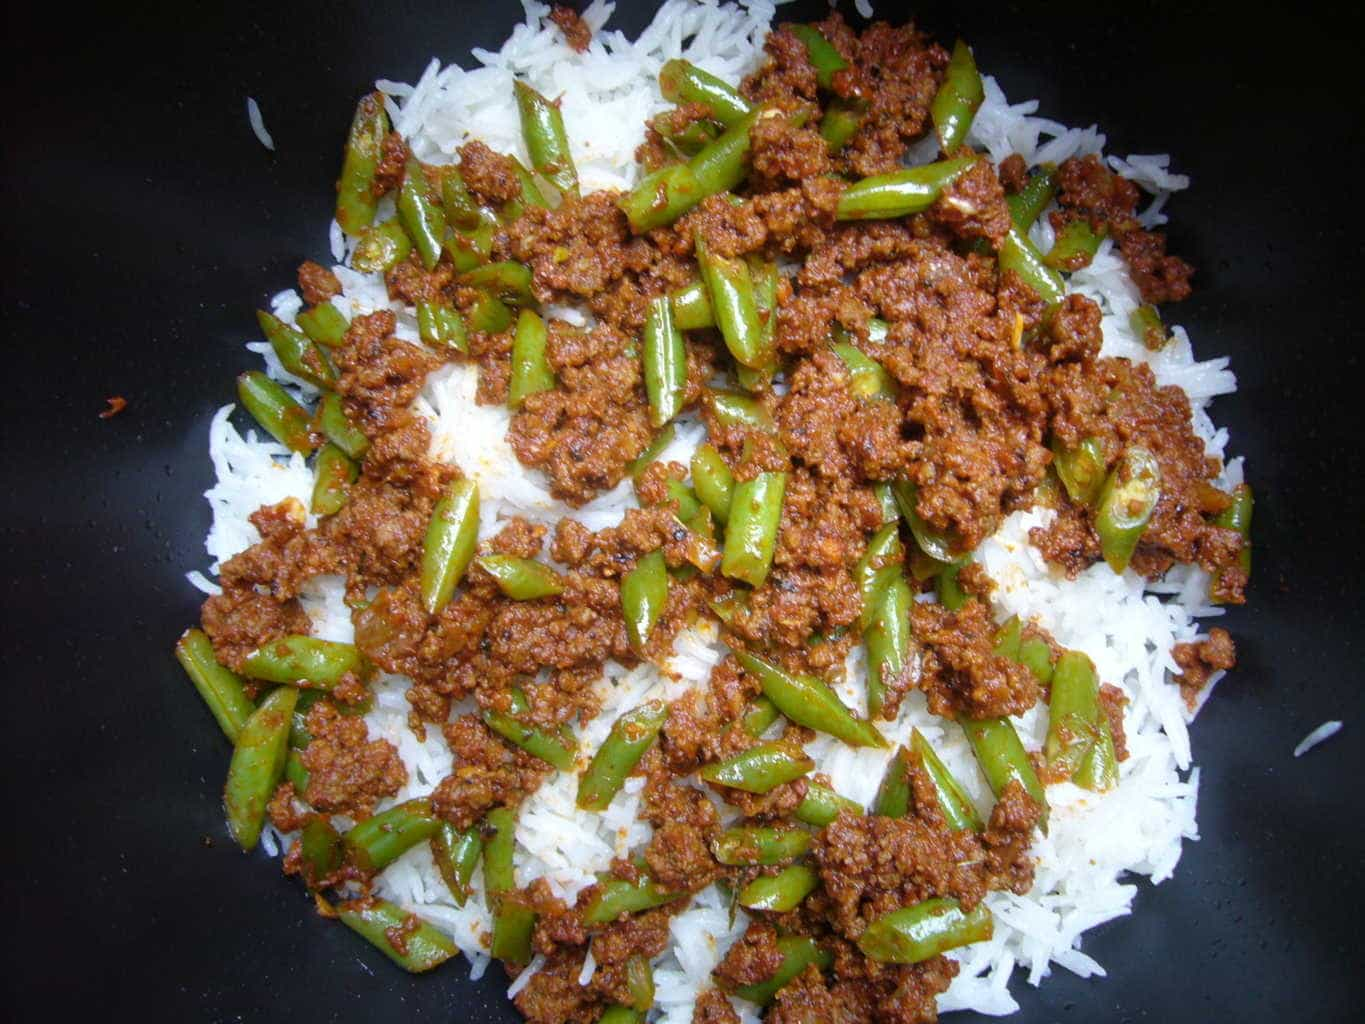 Meat and green bean mixture is layered with cooked rice to make lubia polo.